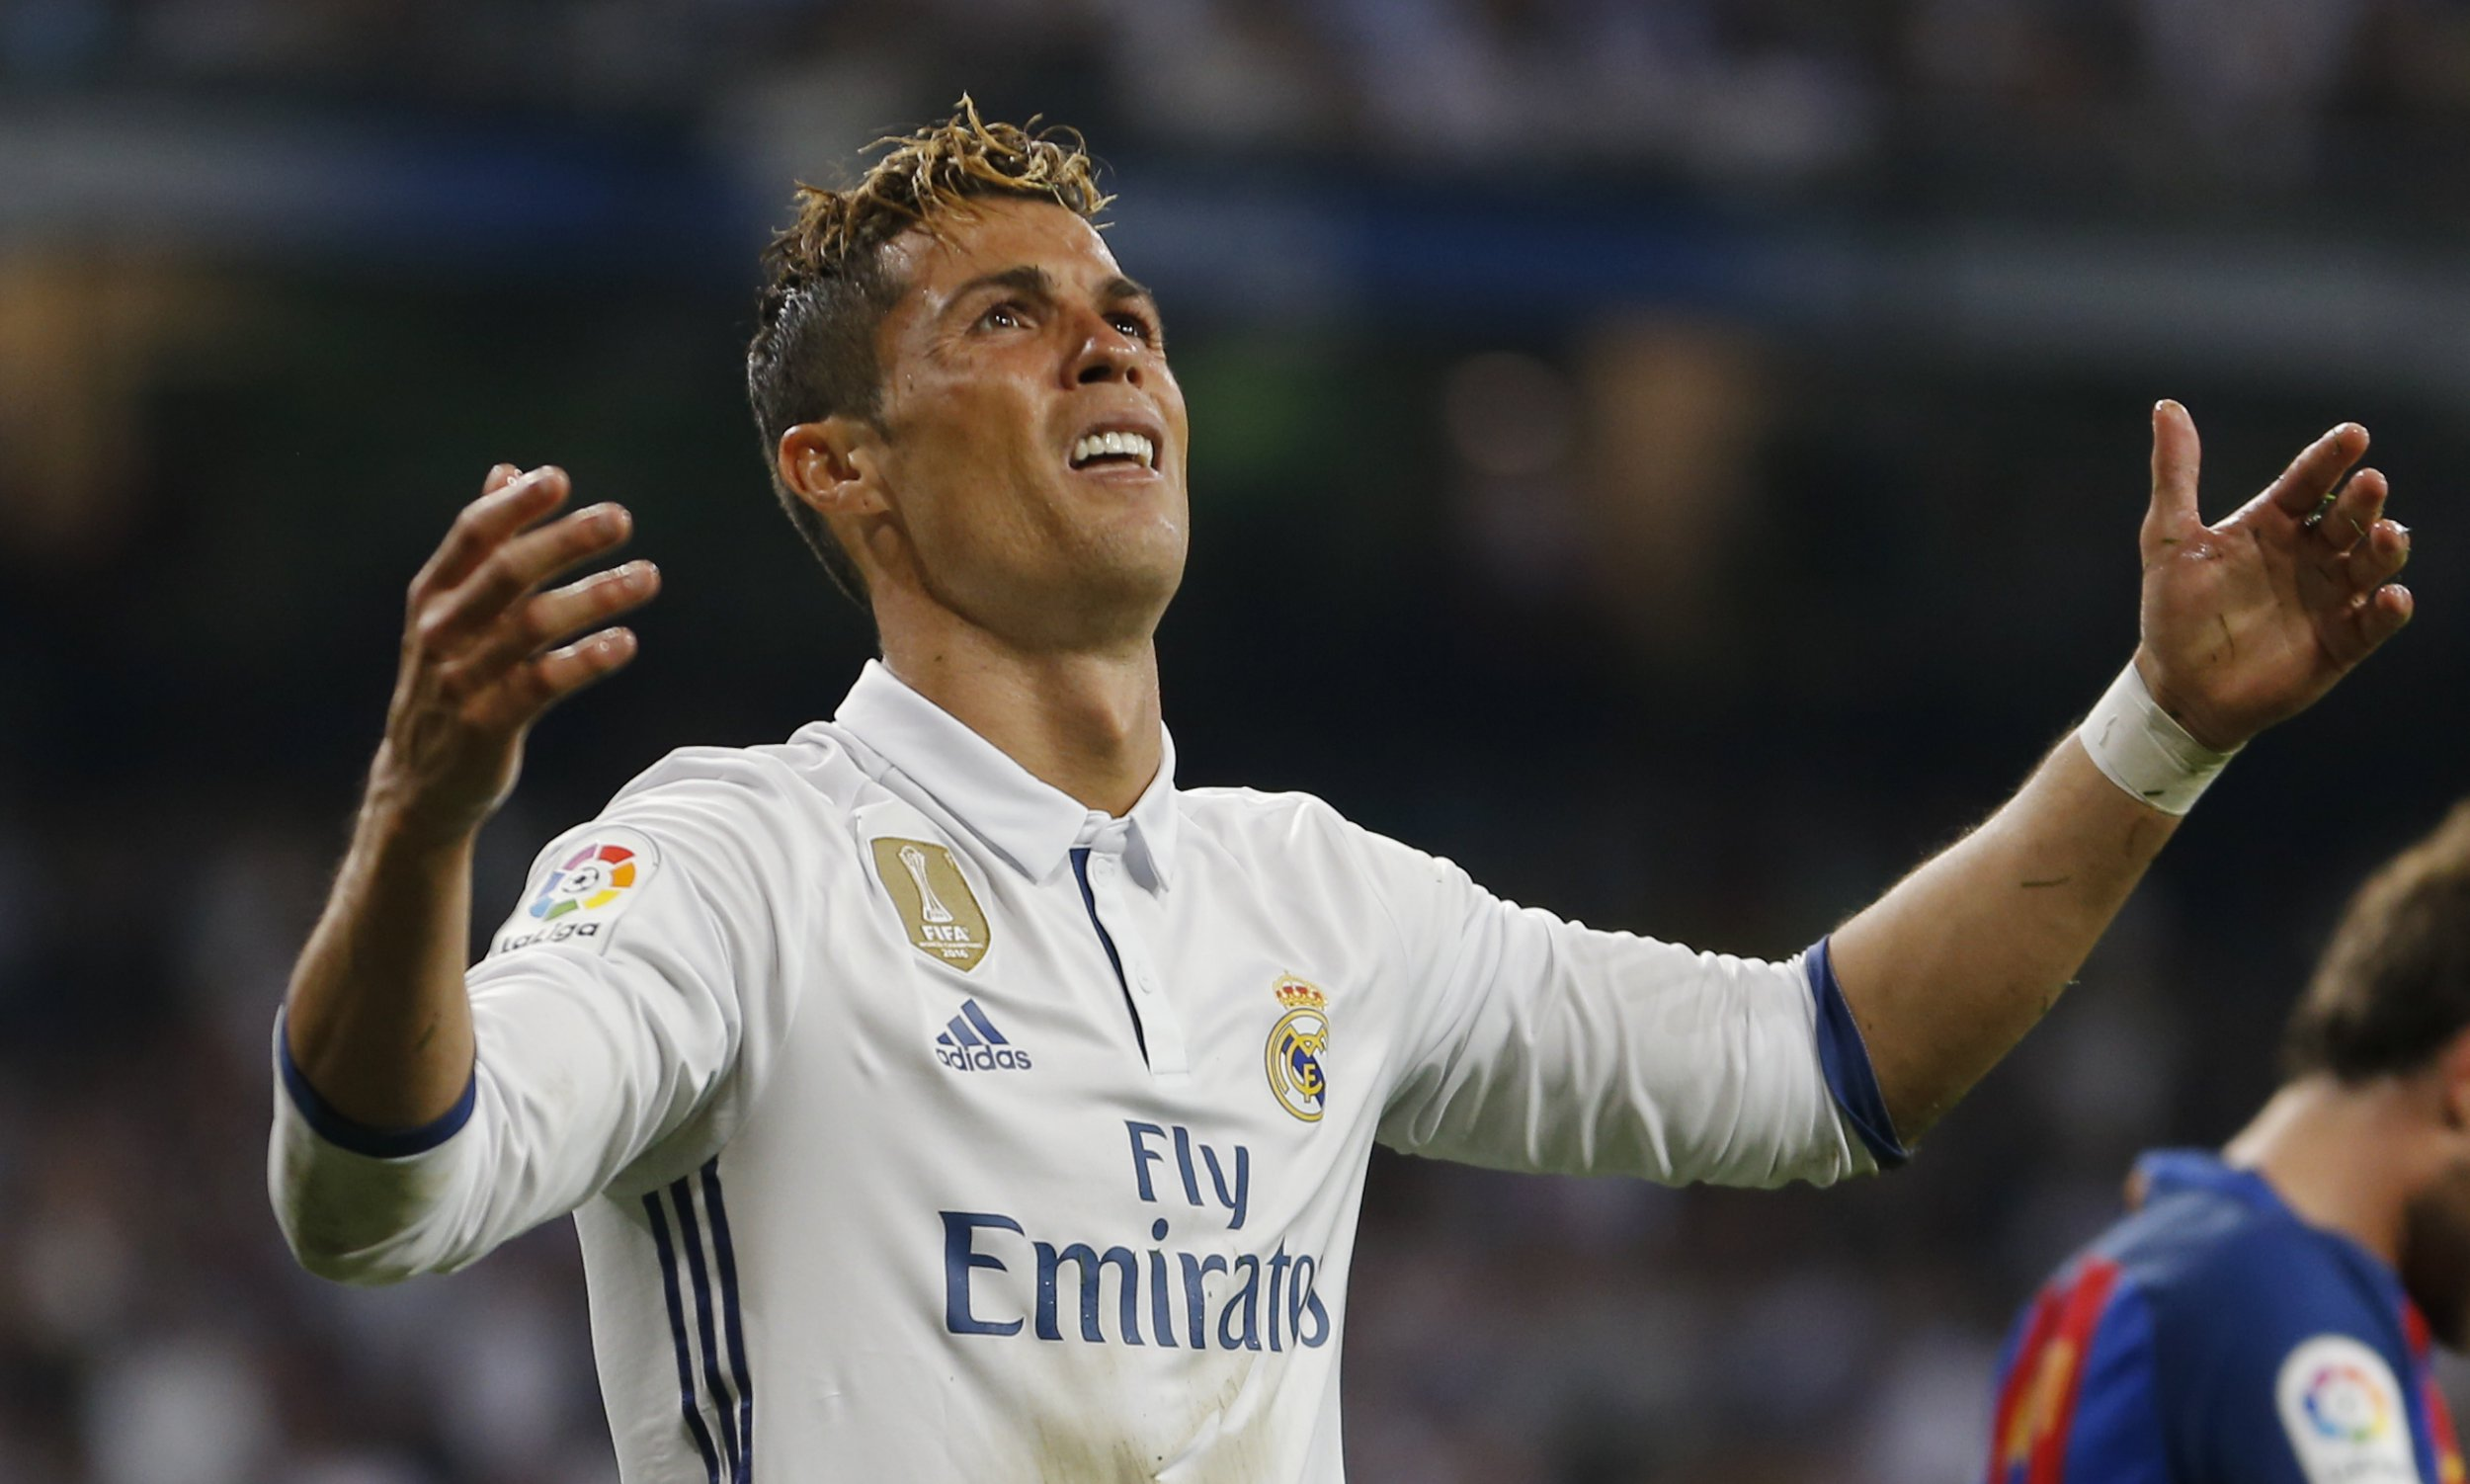 Cristiano Ronaldo's only problem is Lionel Messi, claims Xavi